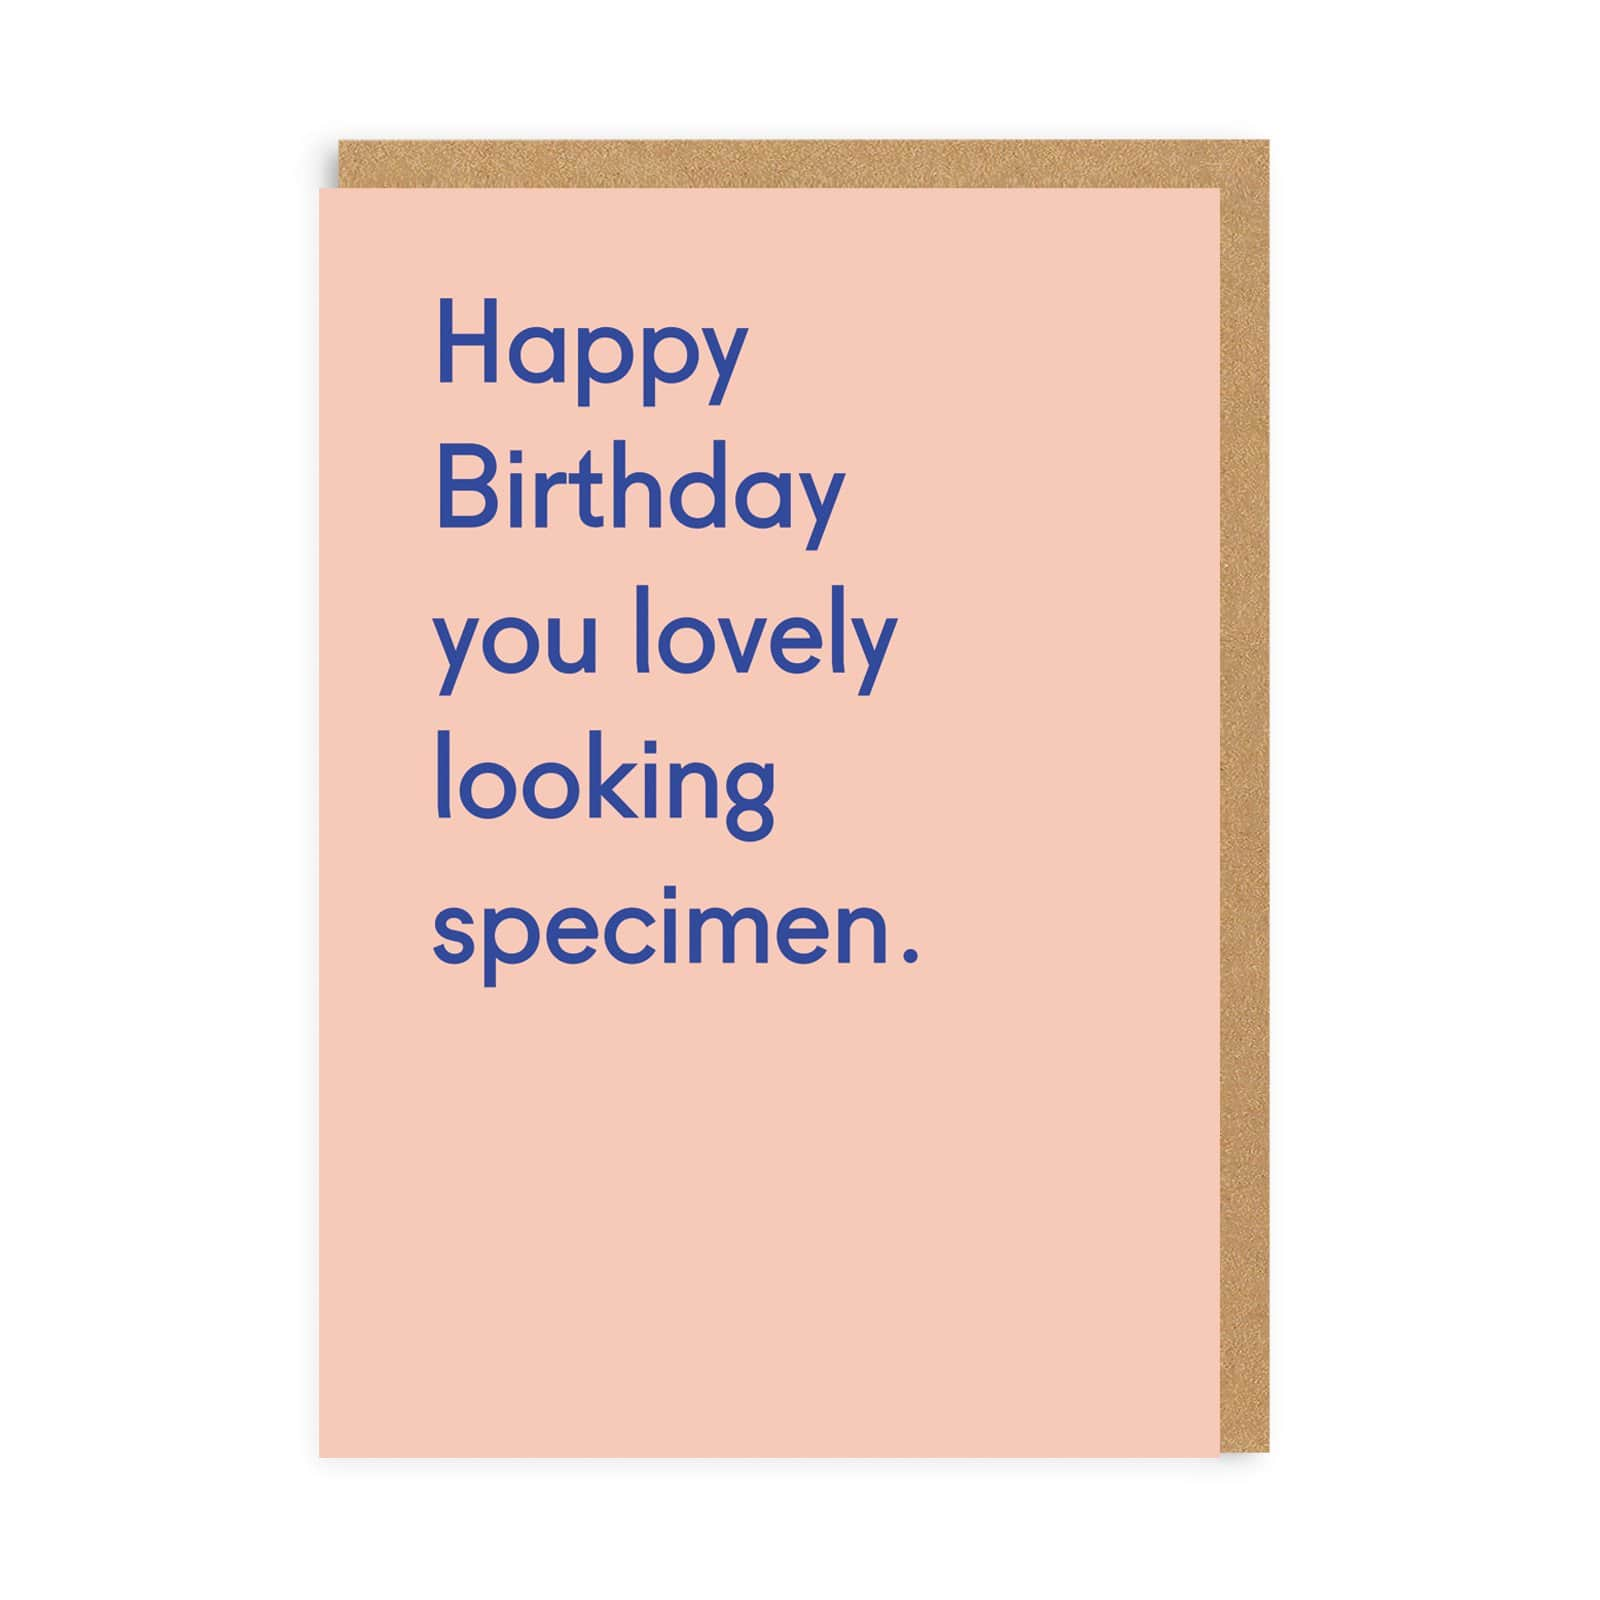 Lovely Looking Specimen Greeting Card